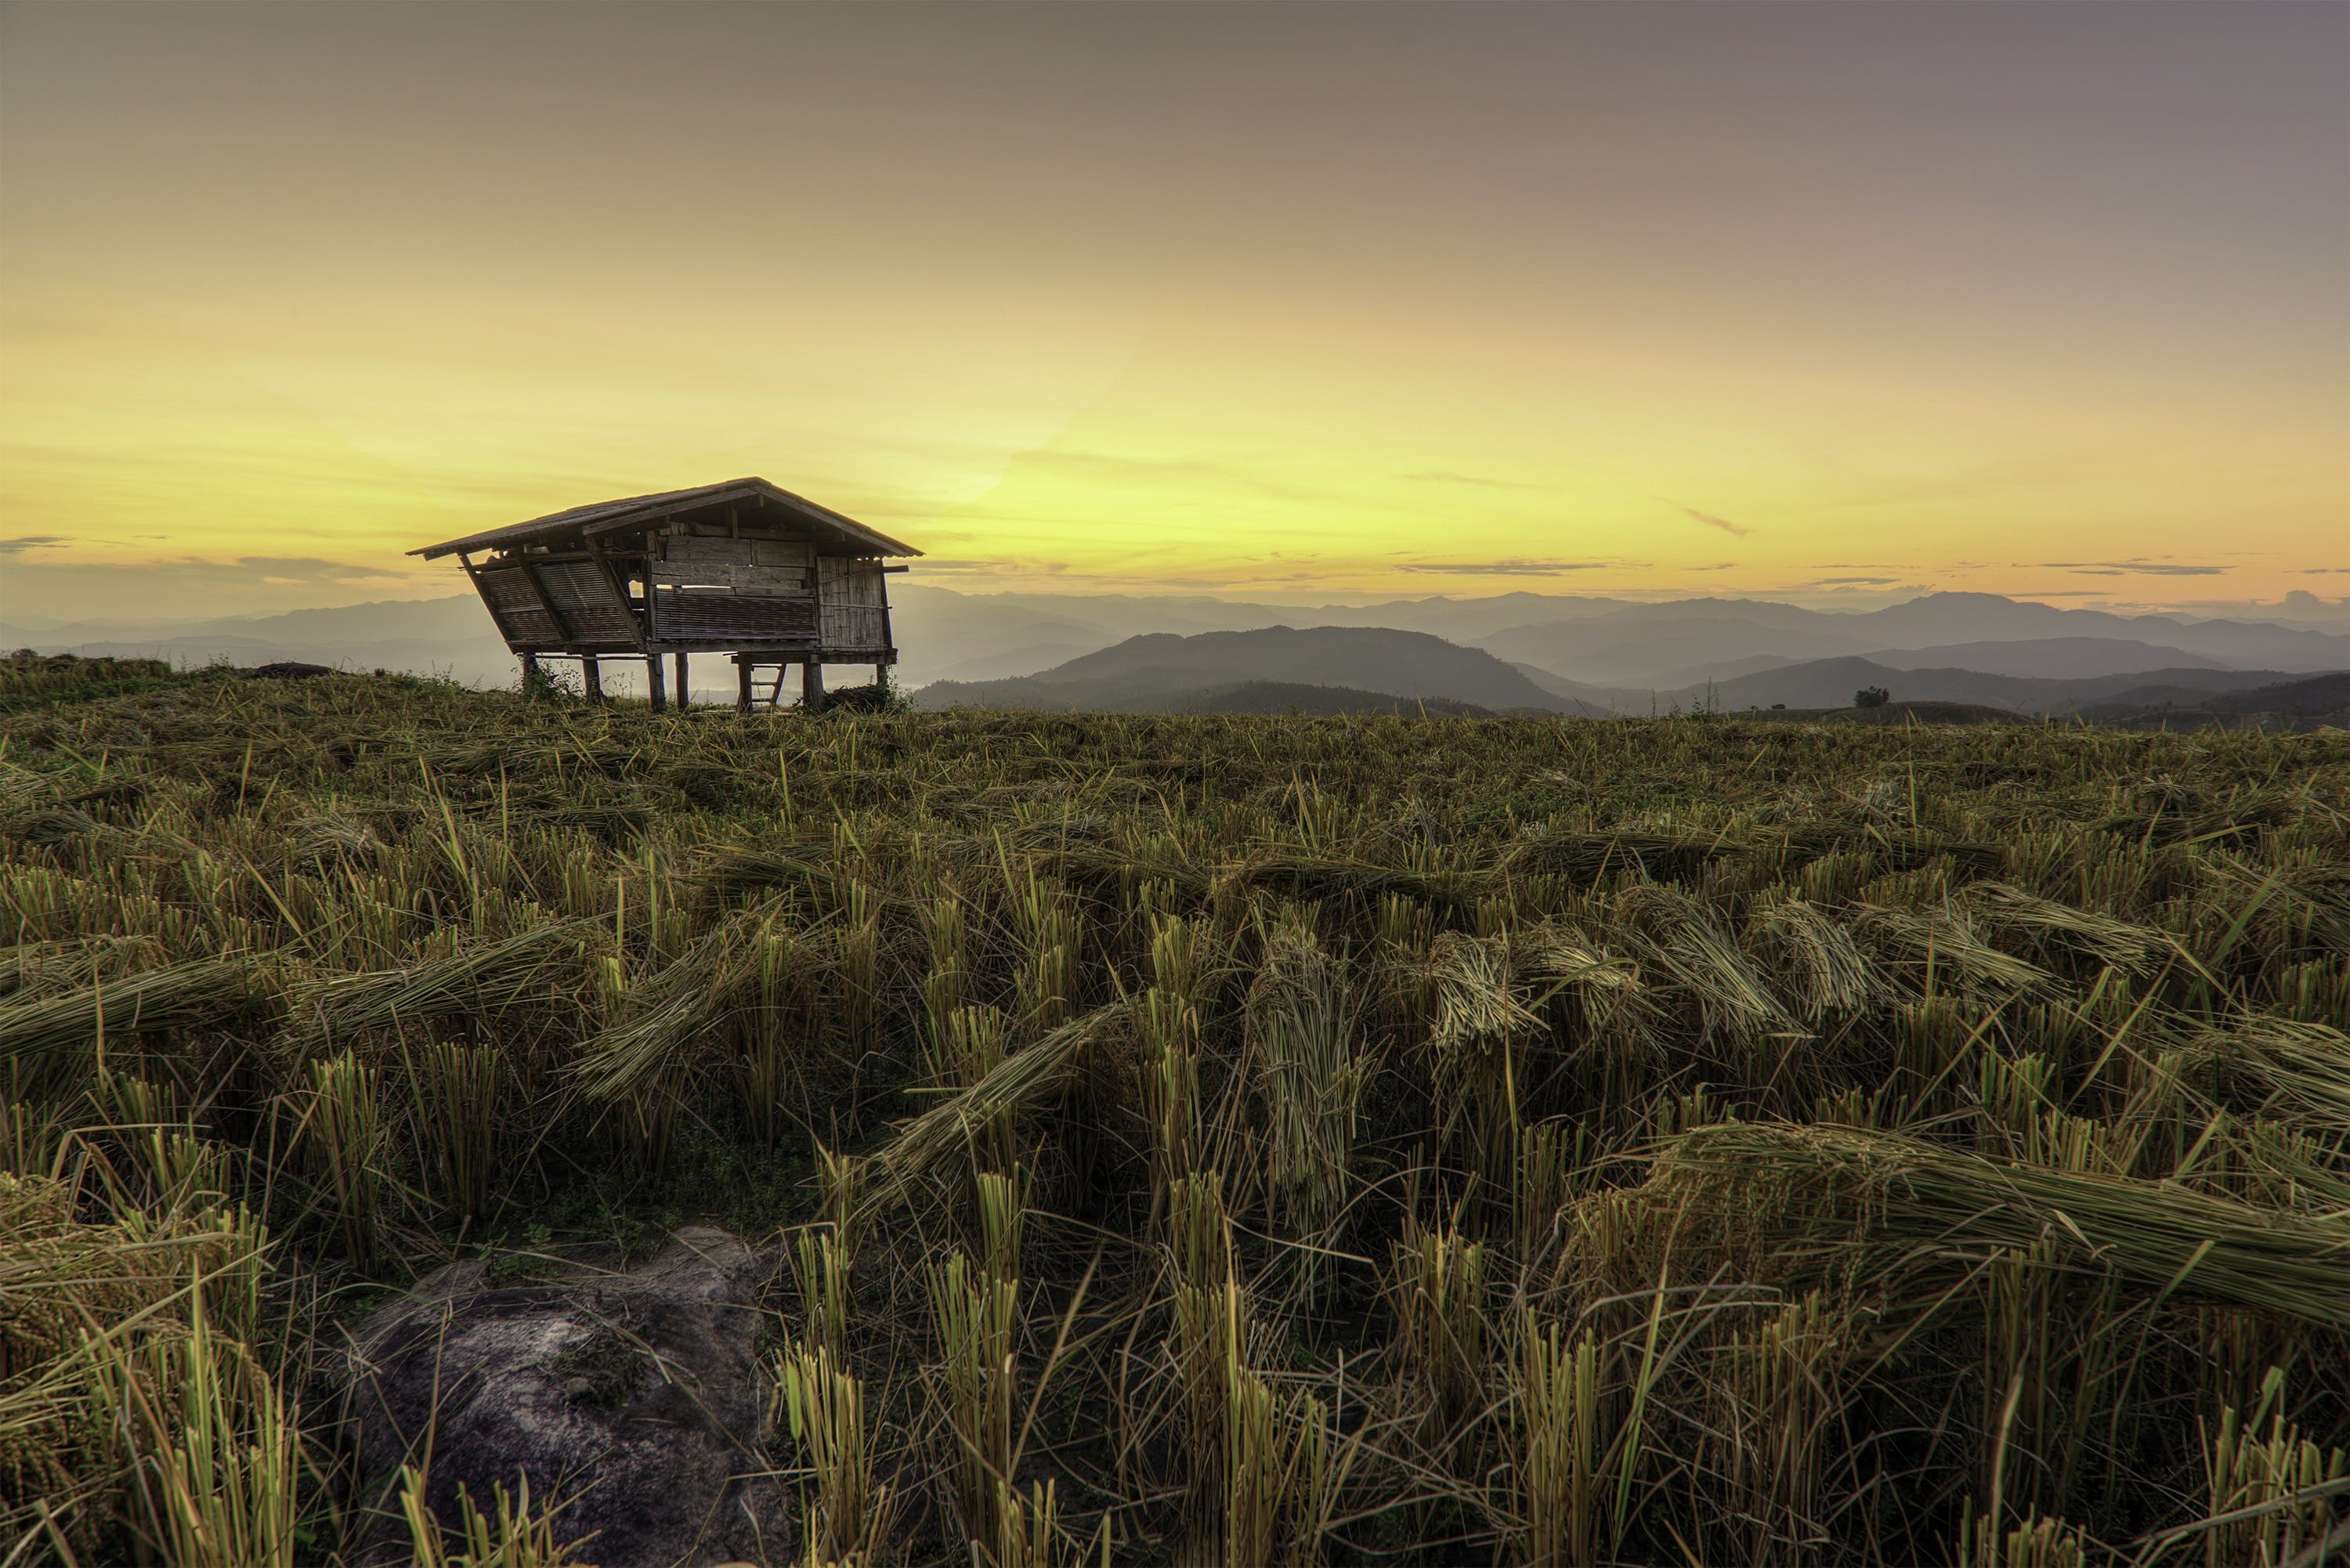 agriculture, asia, barn